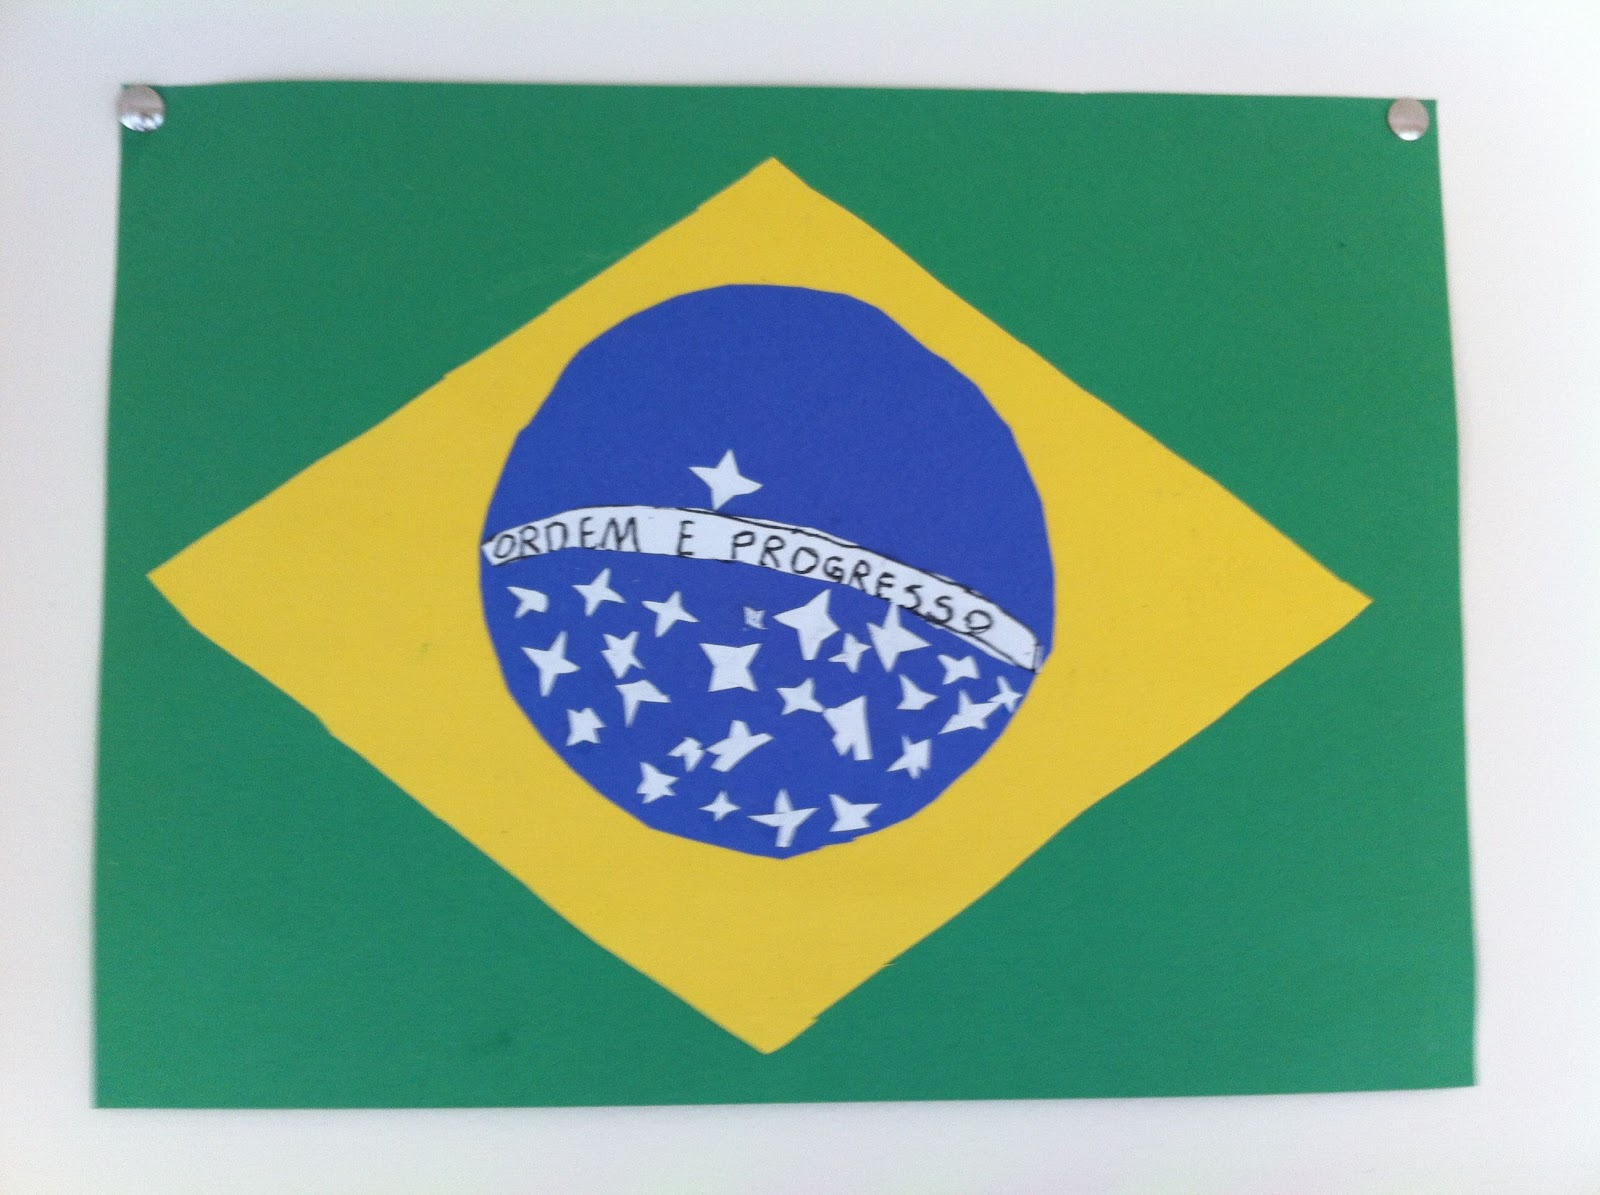 brazilian independence Join us in celebrating the 23rd anniversary of the brazilian independence day festival this year's festival will feature children's activities, information tables, arts and crafts, ethnic food, live brazilian music, and many other attractions.